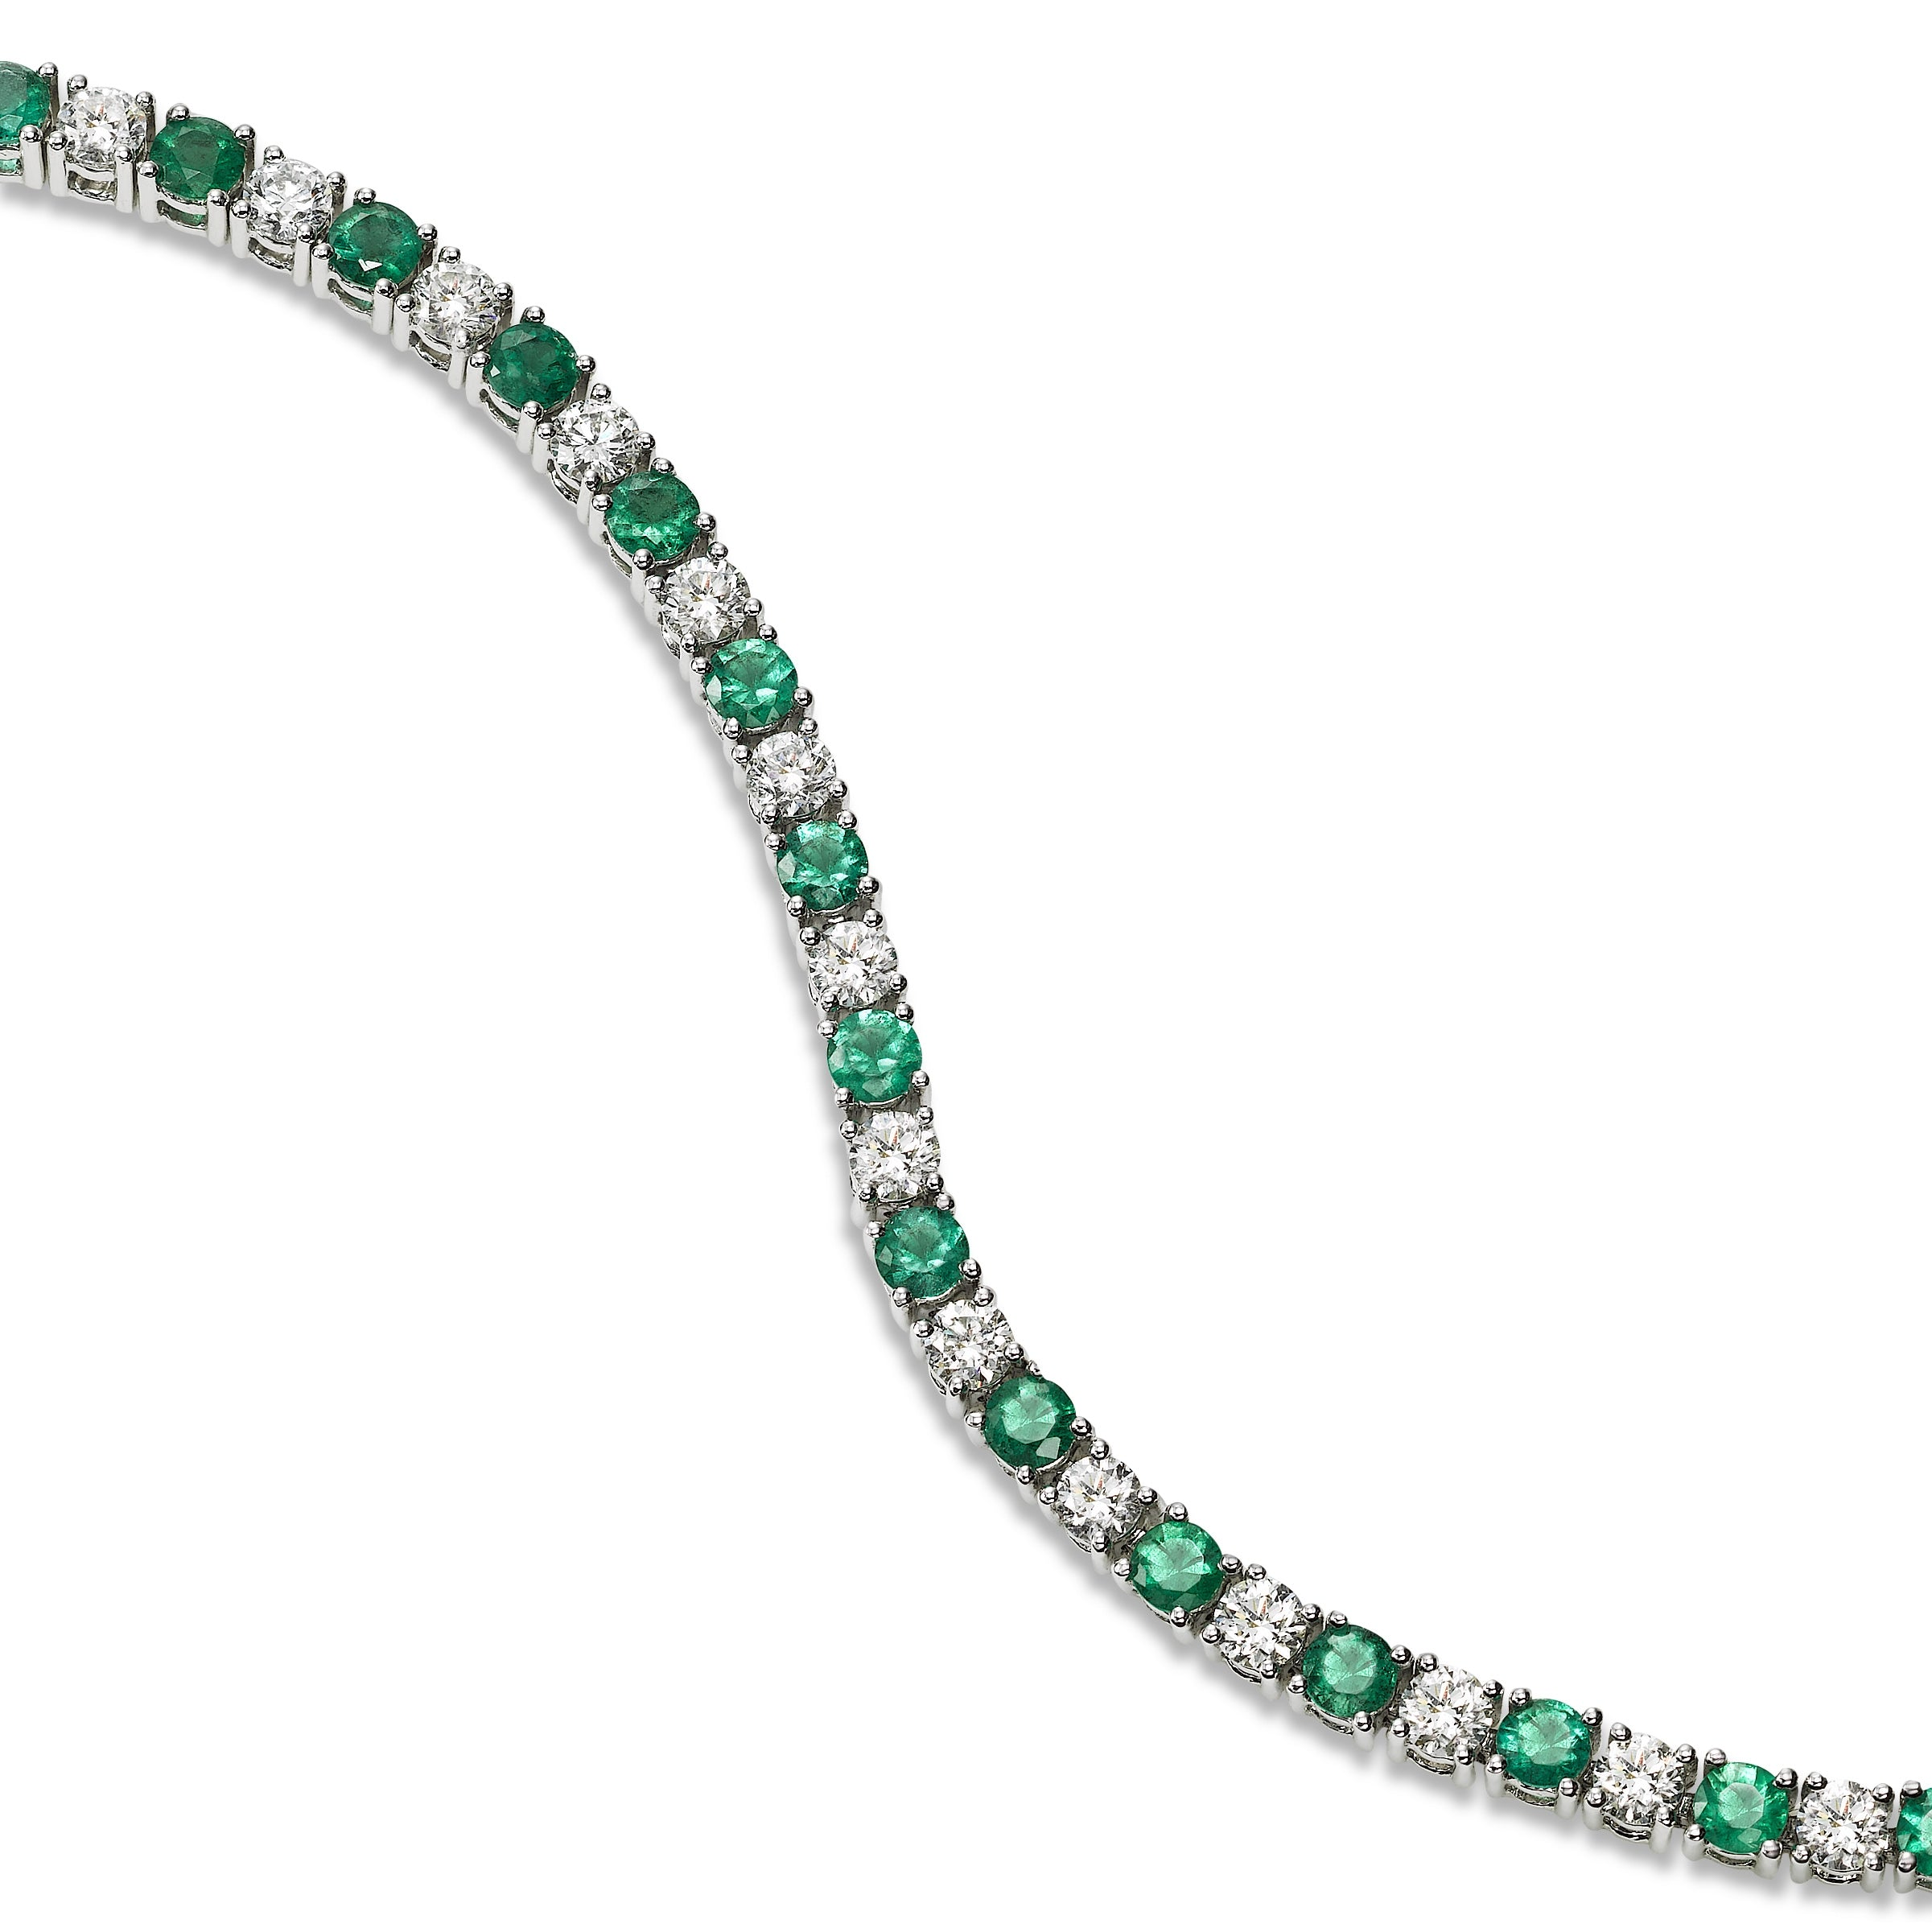 Alternating Emerald and Diamond Bracelet, 14K White Gold